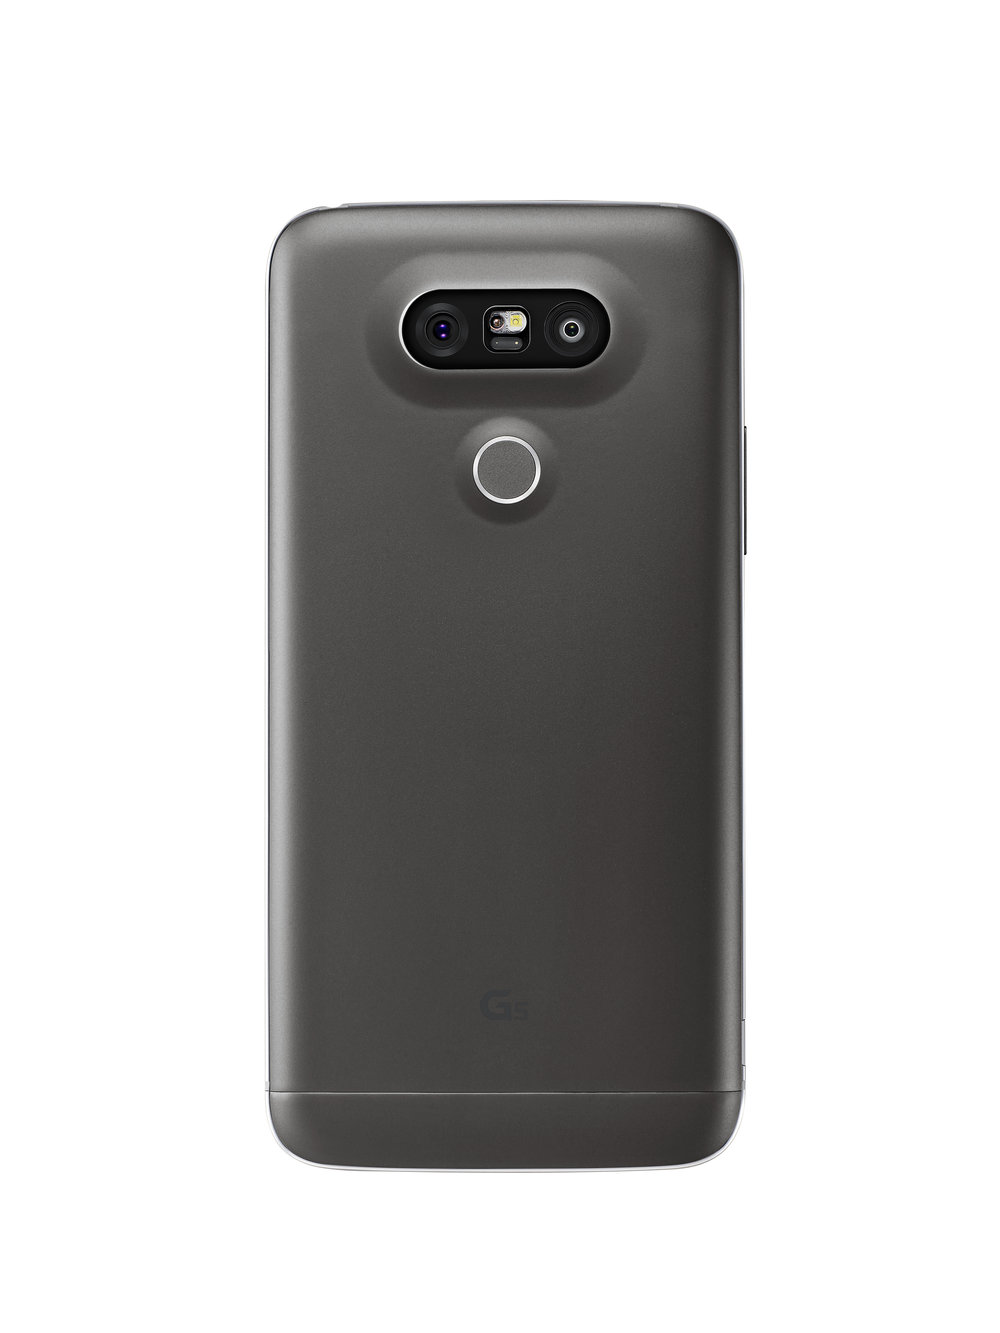 LG_g5_002.png